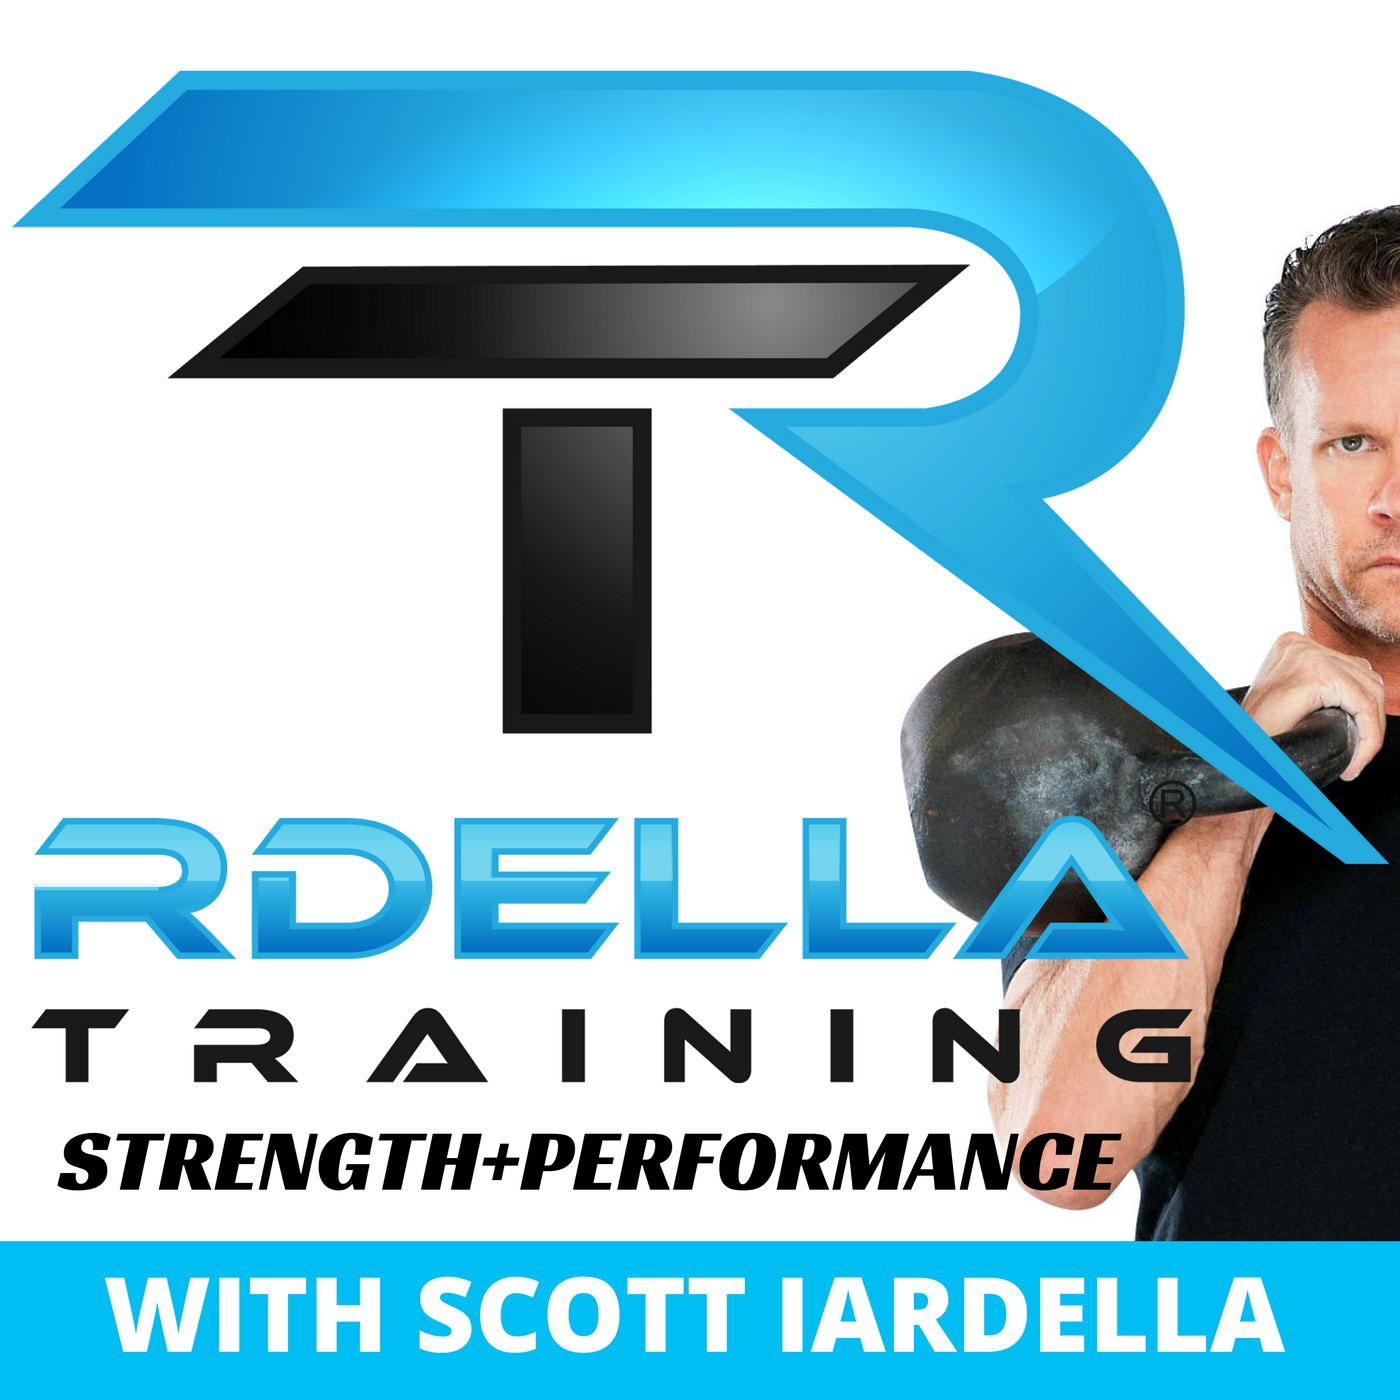 Rdella Training : Strength Training | Kettlebells | Weightlifting | Fitness | Injury Prevention | Nutrition | Peak Performance